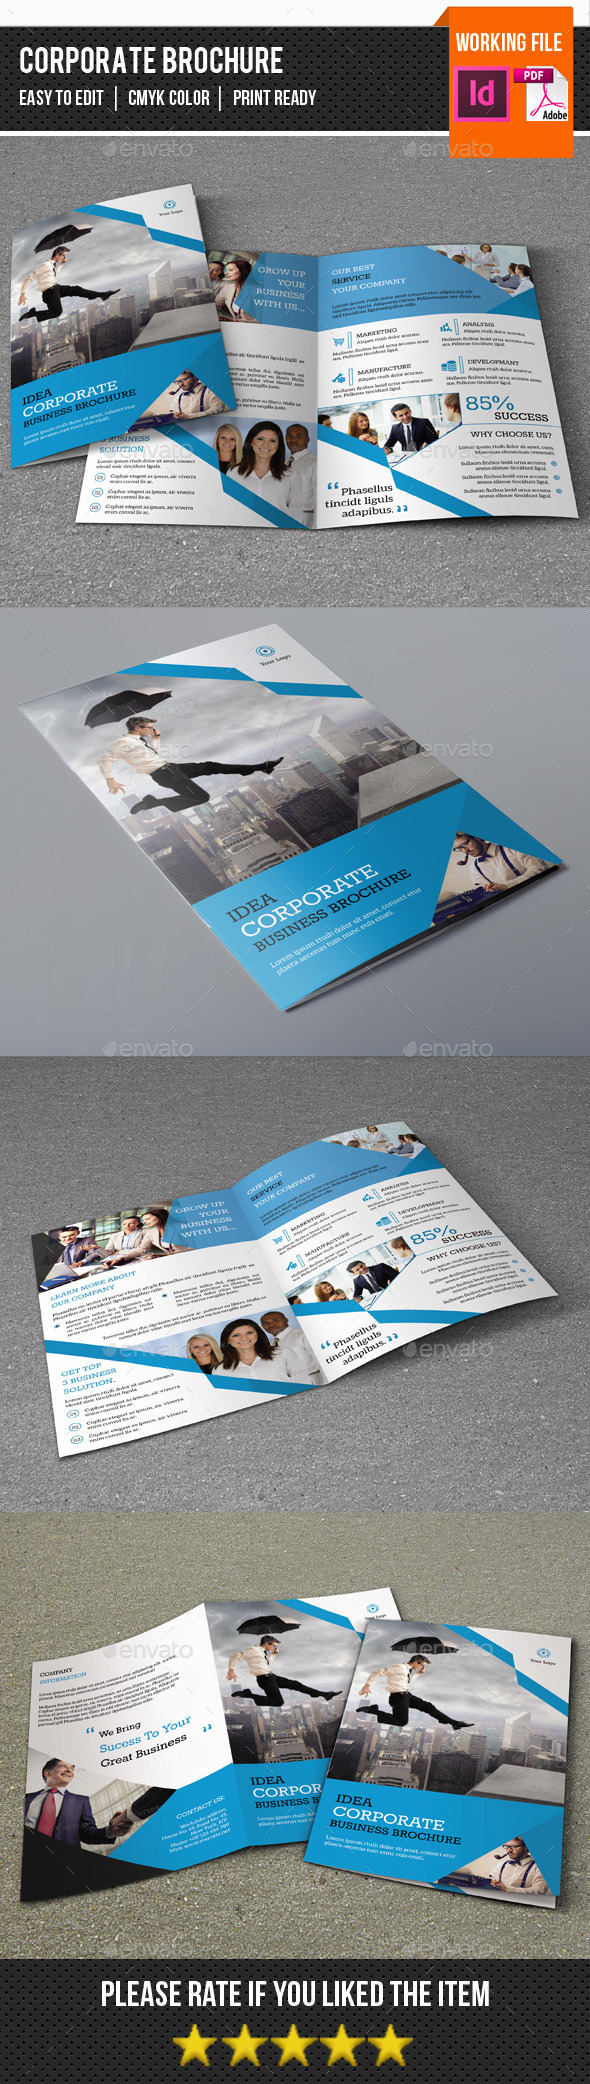 Bifold Corporate Brochure-V332 - Corporate Brochures